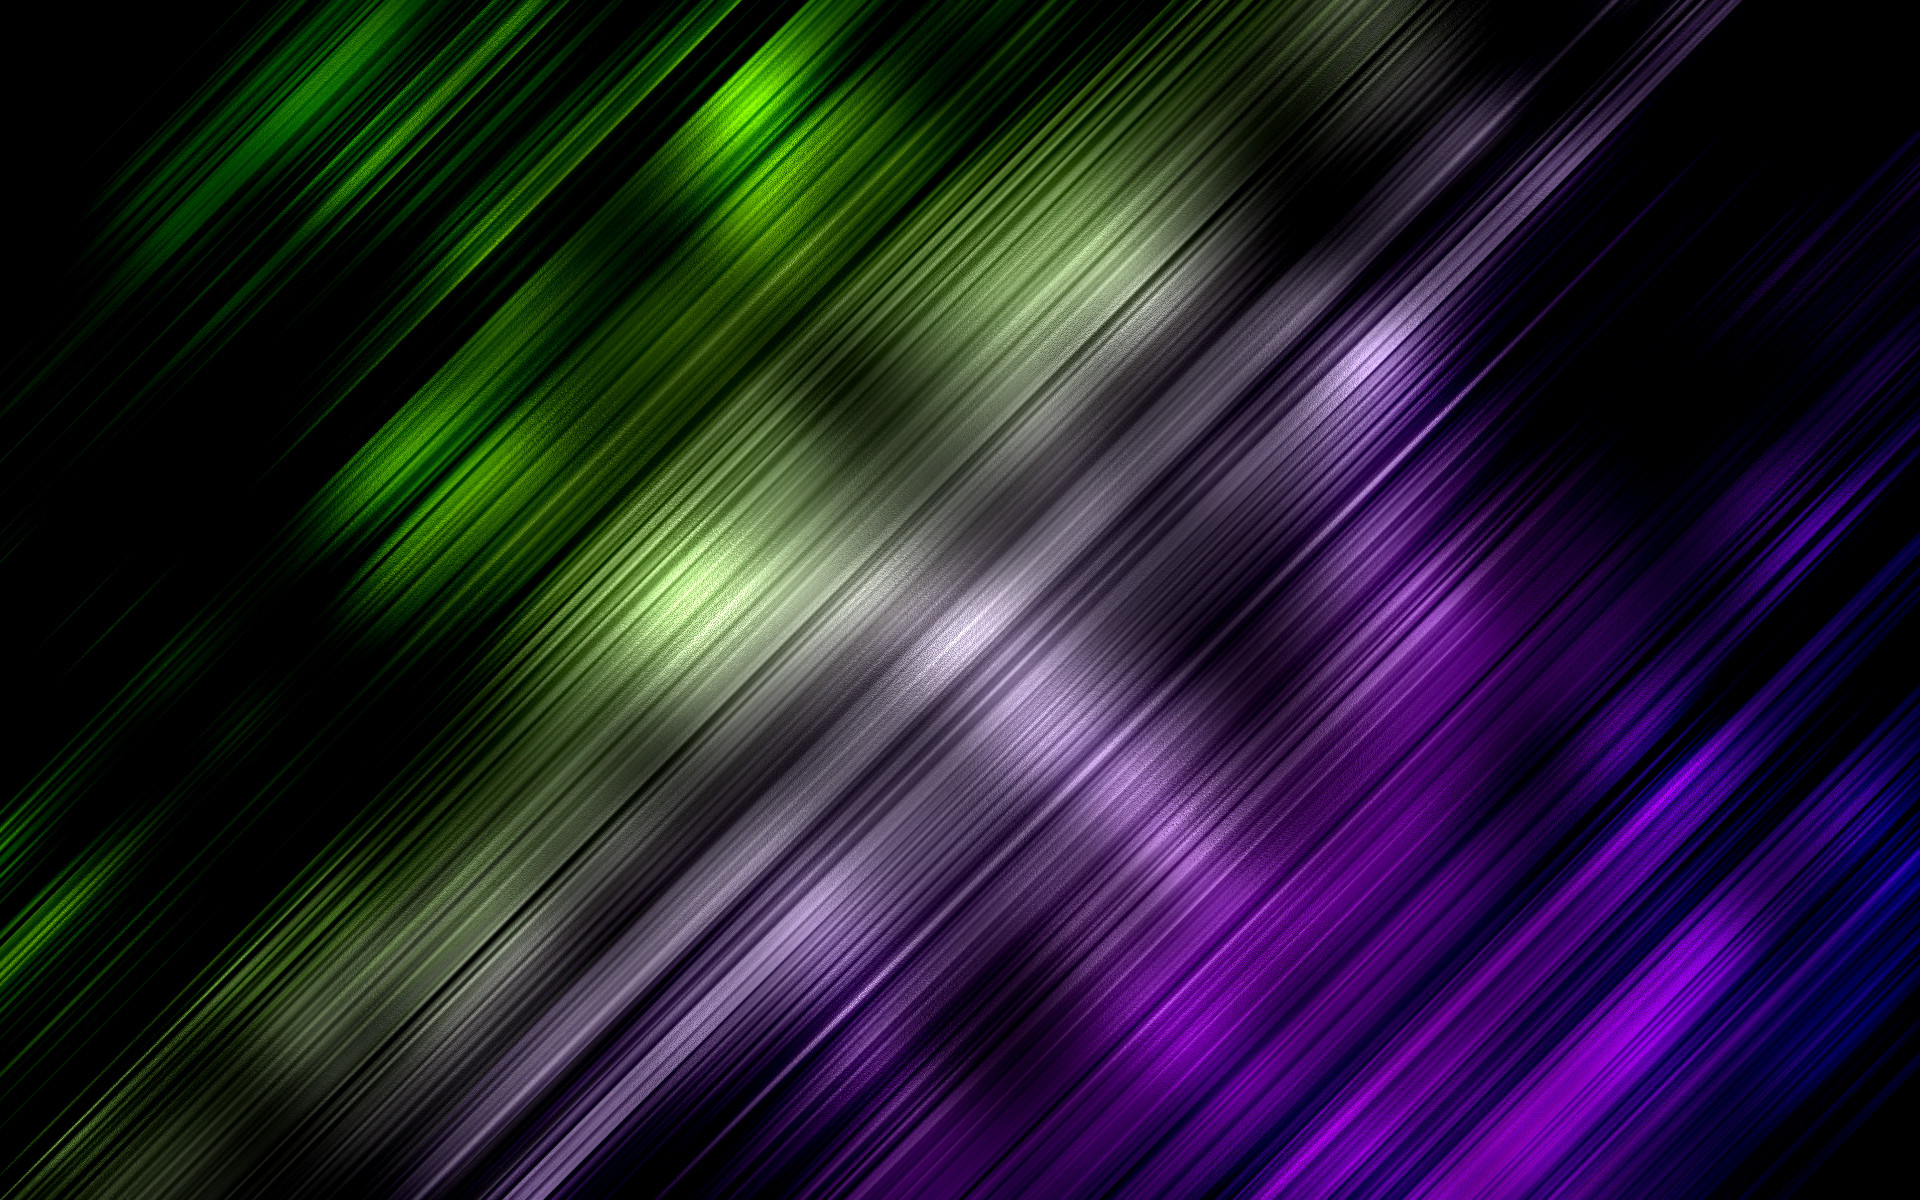 Full HD Wallpapers + Backgrounds, Lines, Green, Purple, Blue